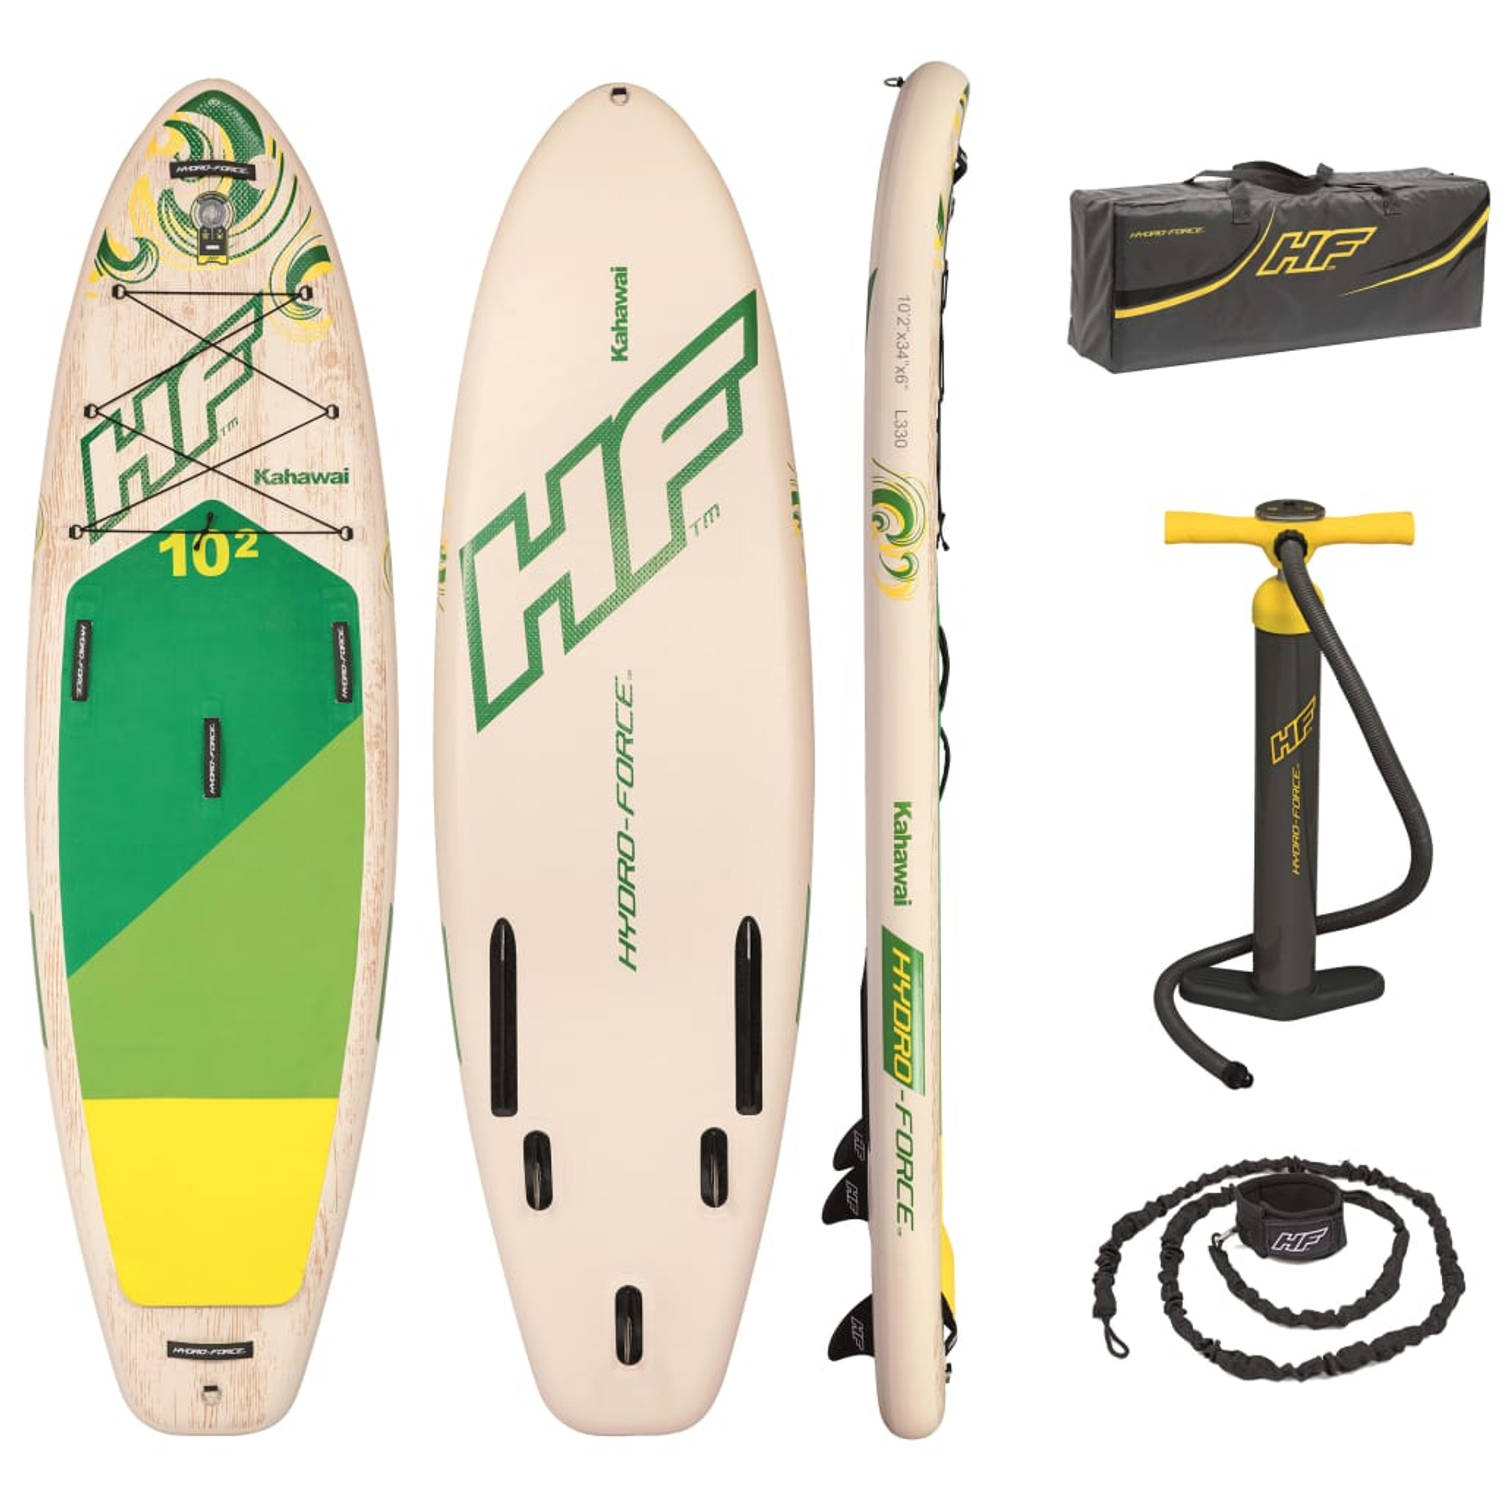 Bestway Paddle boardset opblaasbaar Hydro-Force Kahawai 65308